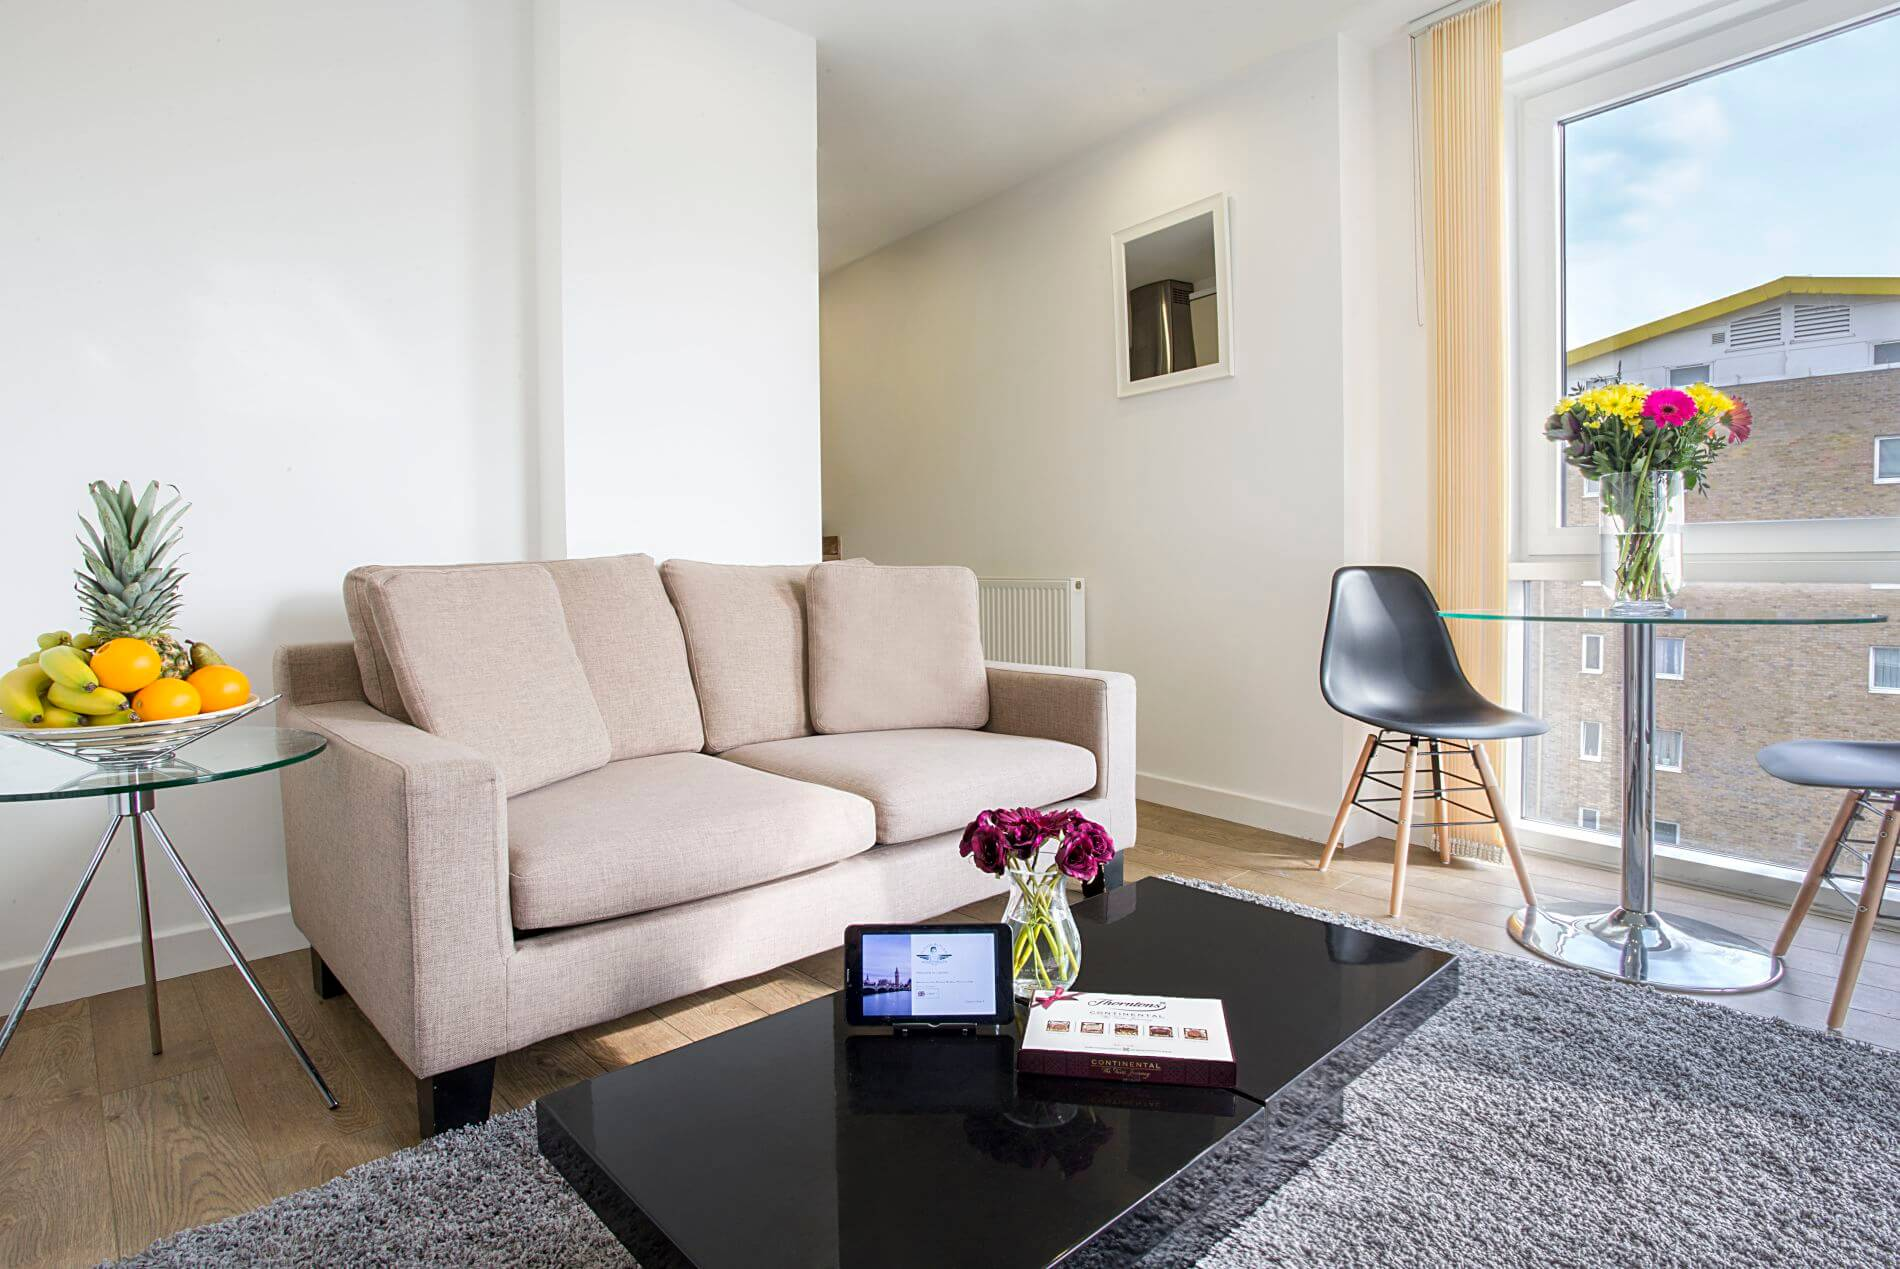 Modern 1 bedroom serviced accommodation in London